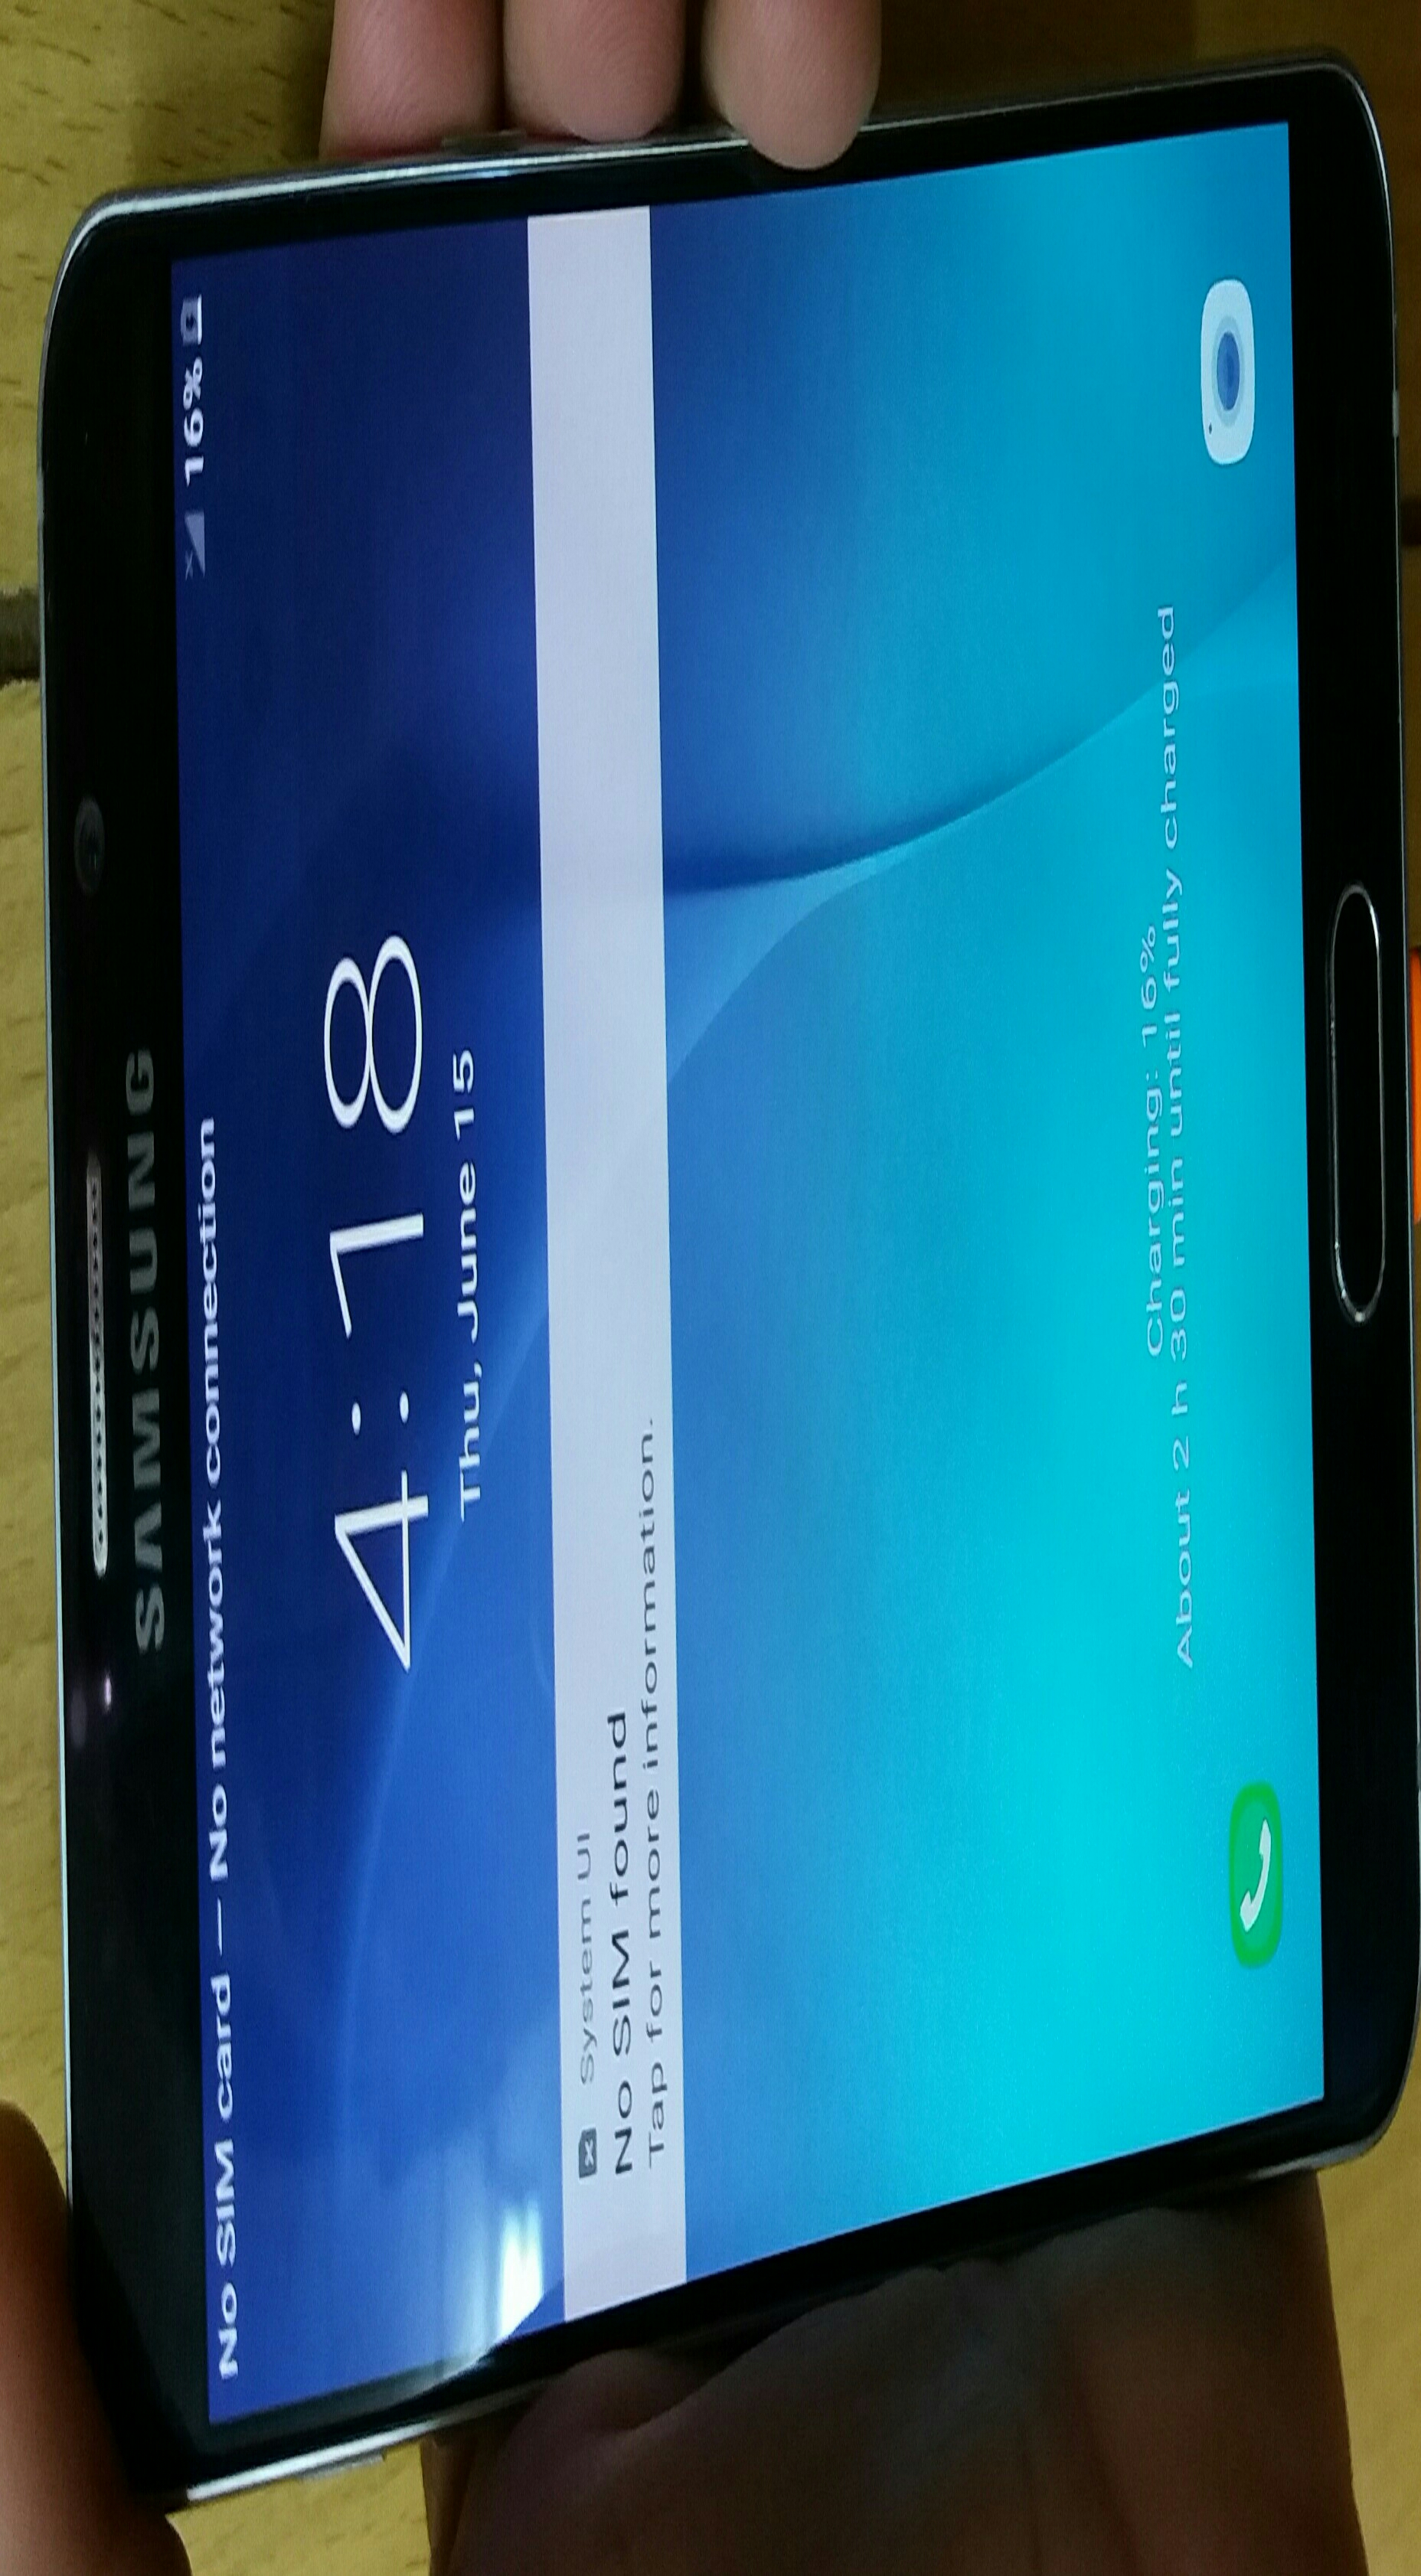 Samsung Note 5 32 With Fast Charger A+Condition No Scratches